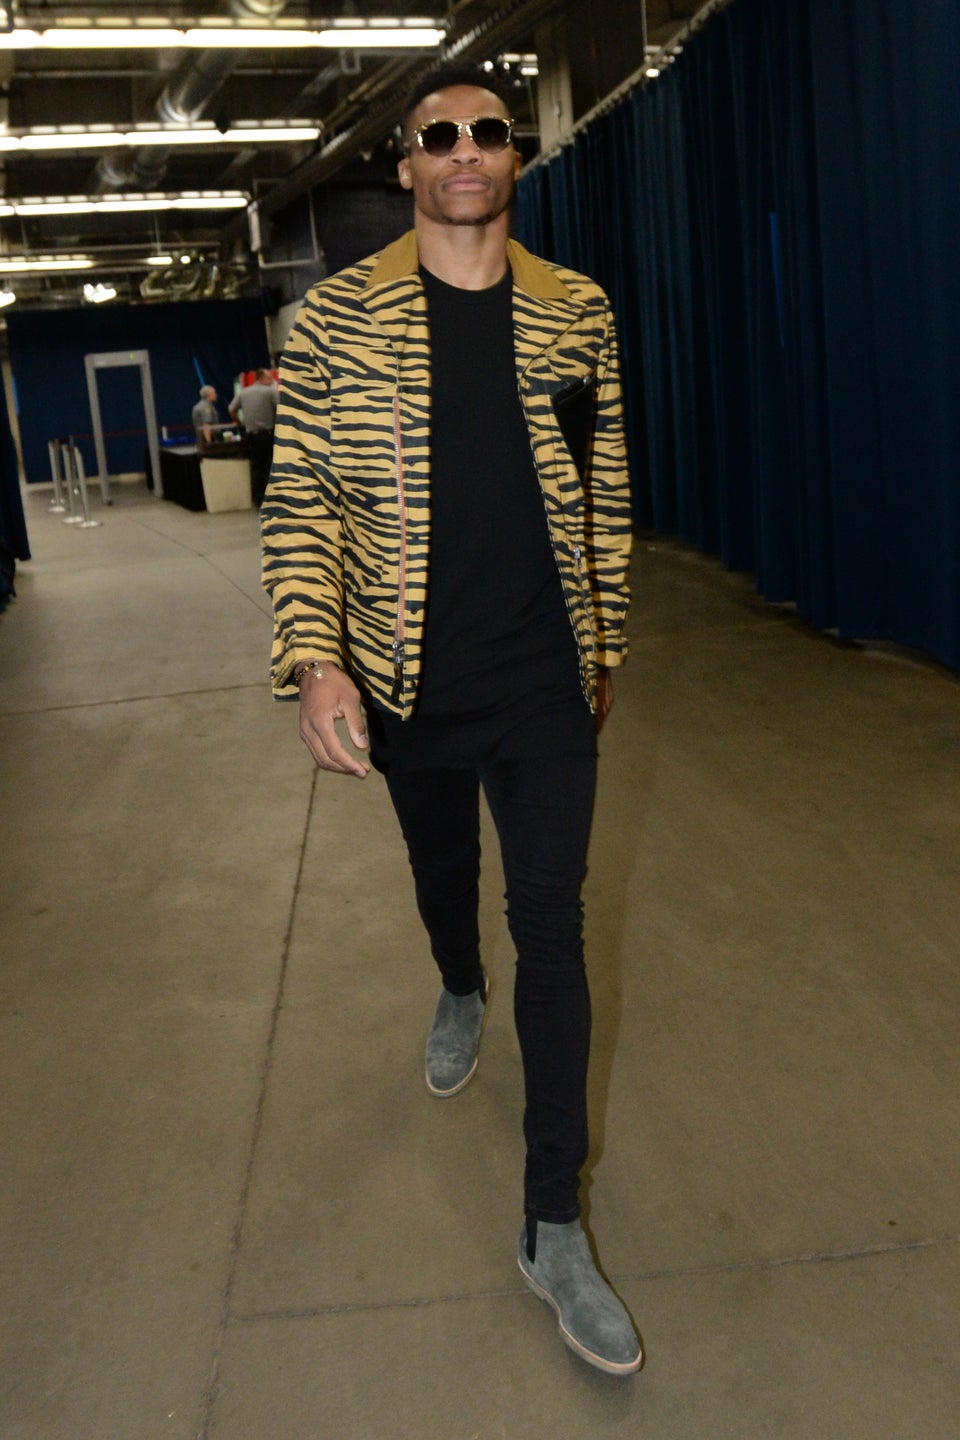 A Look At NBA Player Game Day Fashion